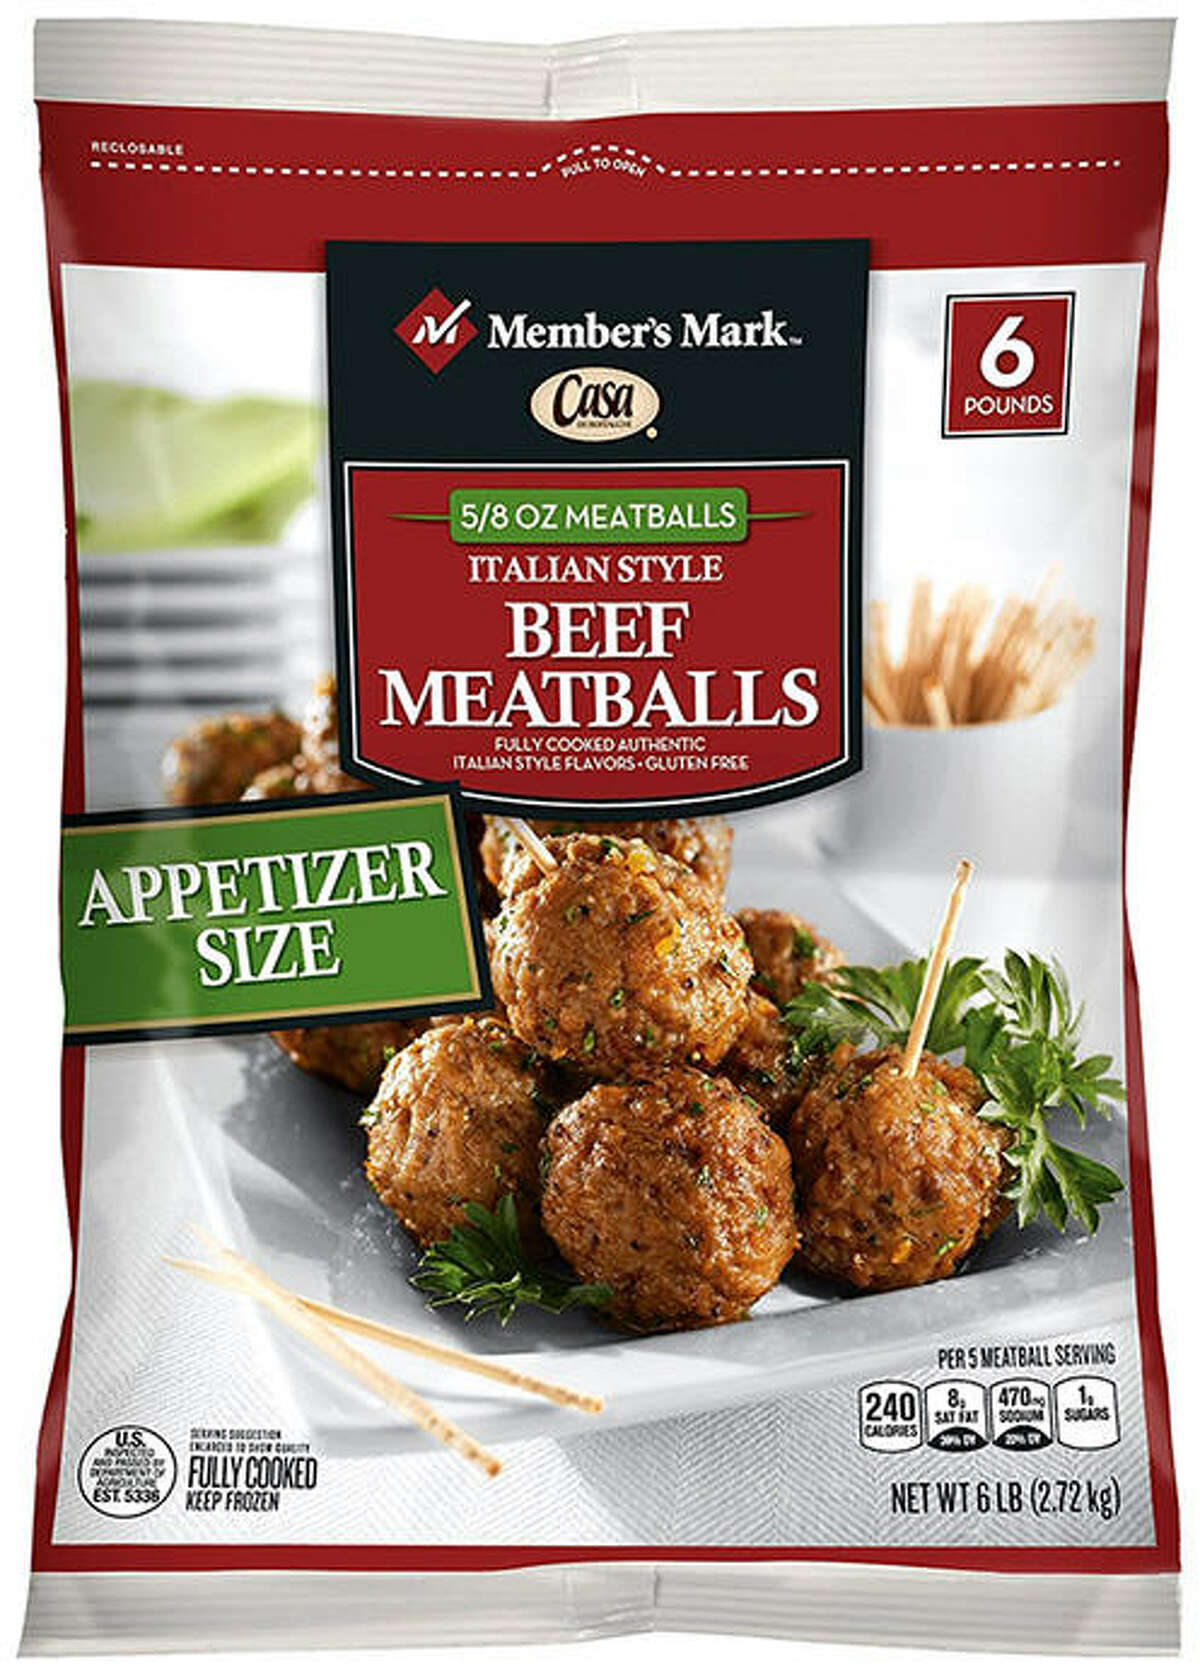 Wednesday evening, the United States Department of Agriculture announced that Rich Products Corporation is recalling 3,420 pounds of beef meatball products (pictured) that may be contaminated with listeria. Continue through the photos to see the other recalls announced recently.